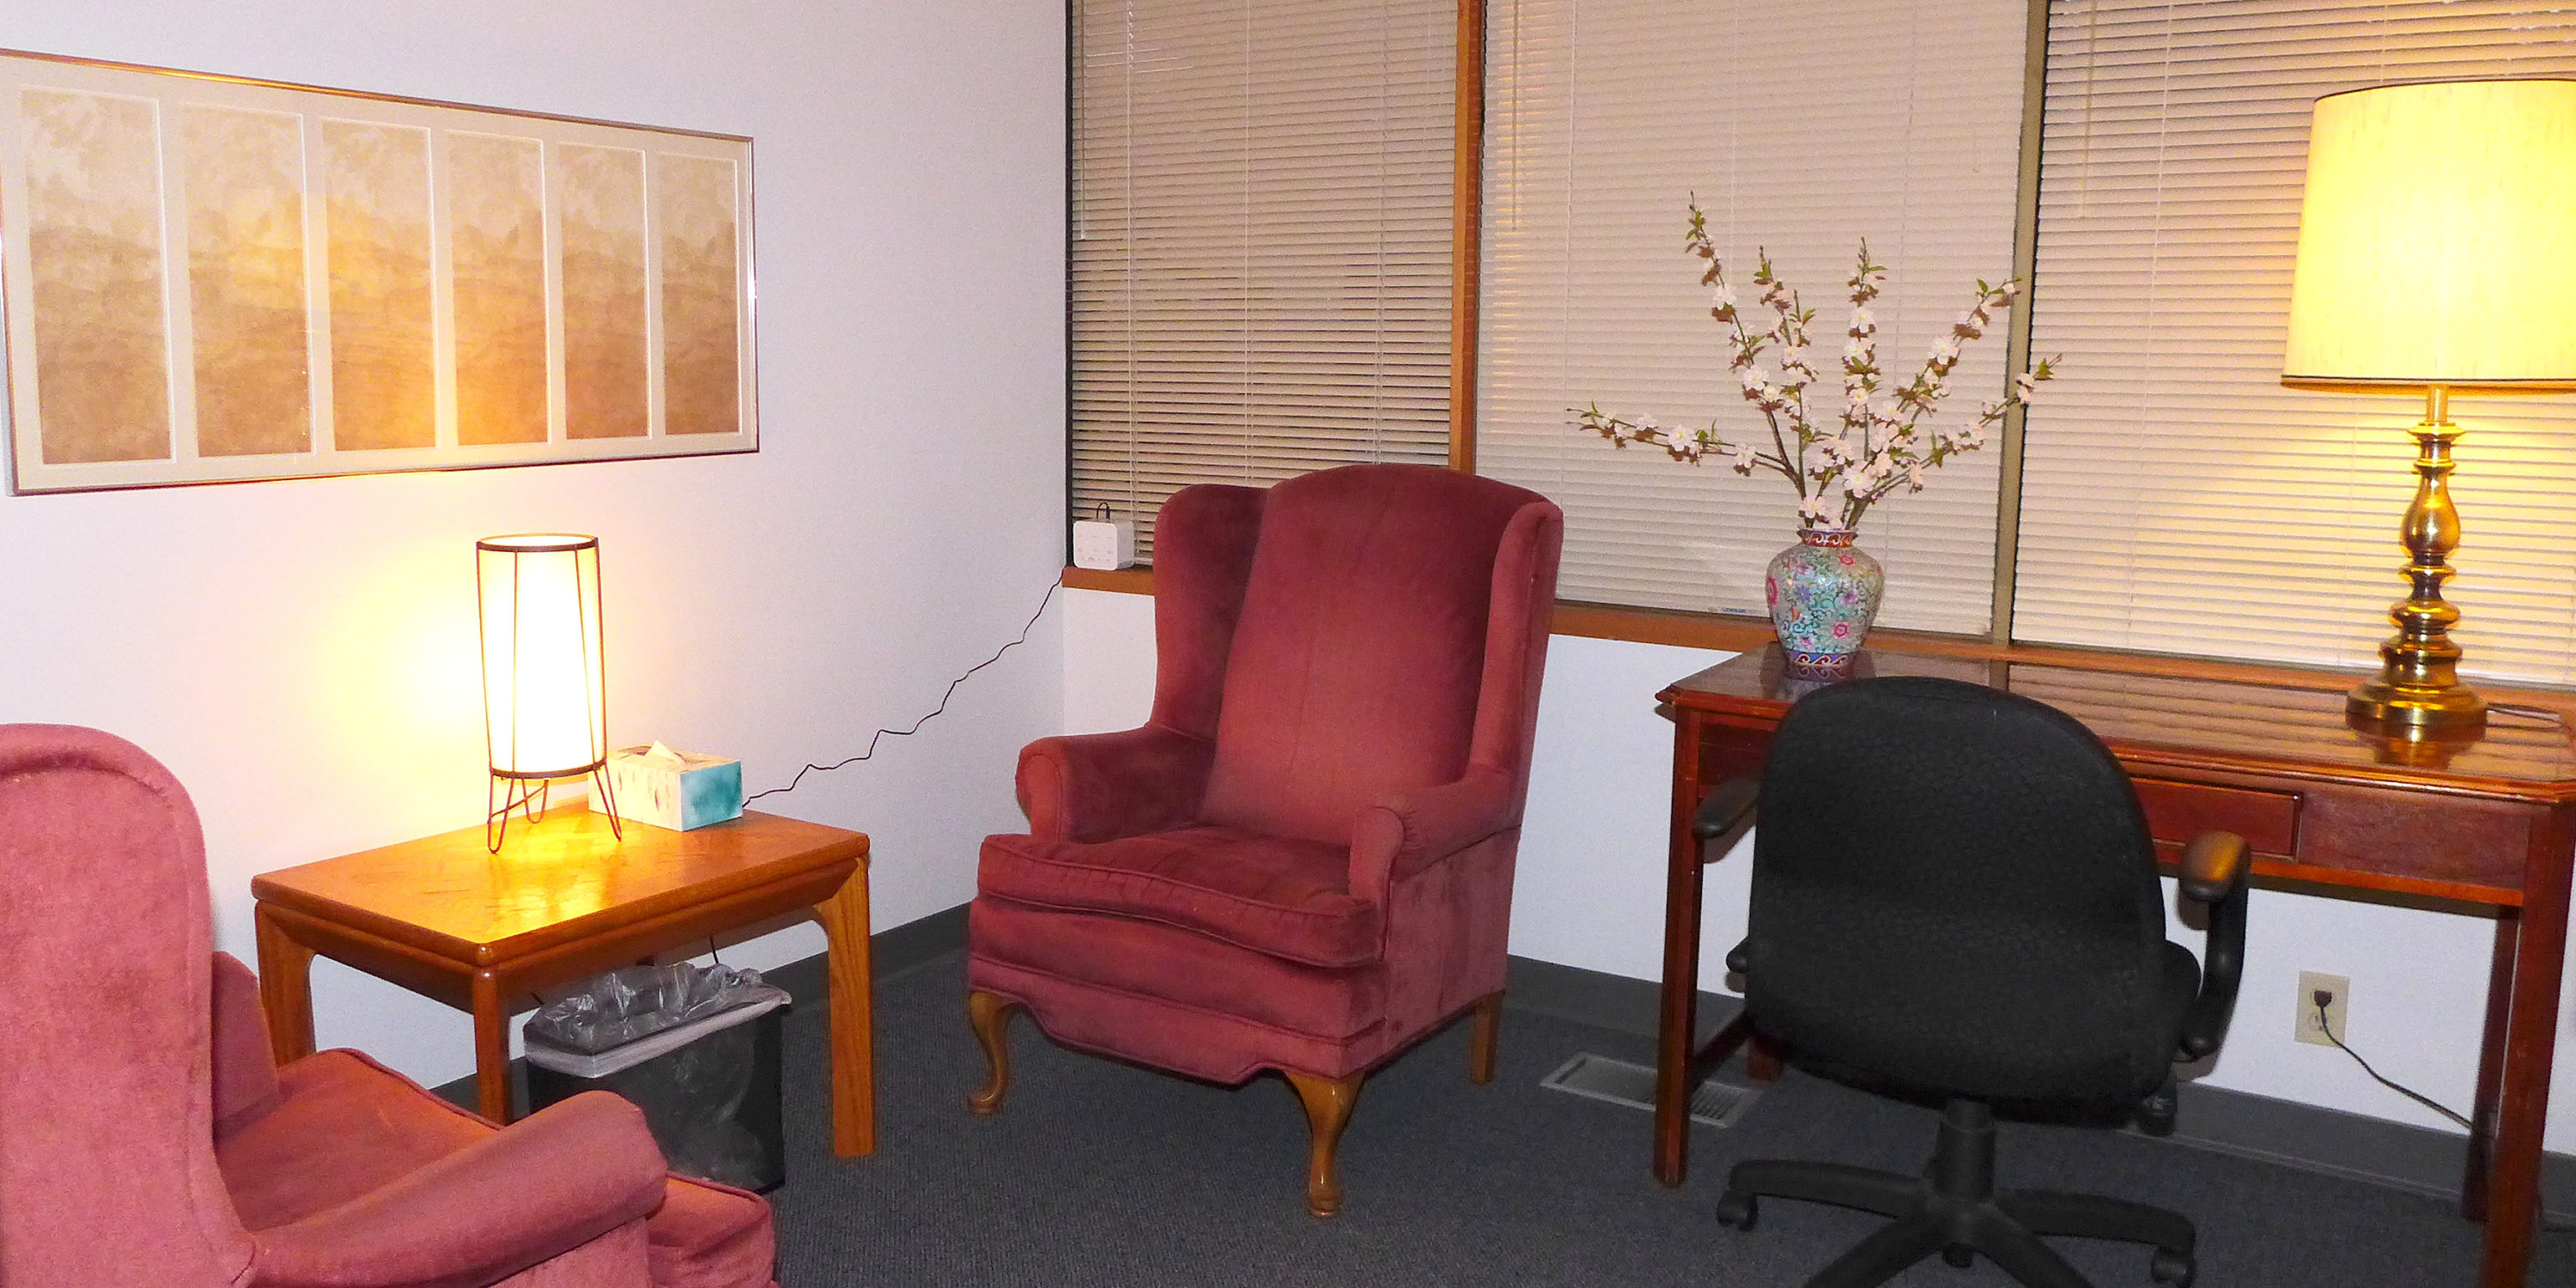 Counseling Room 2 for rent, Sage Center for Wholeness and Health, Beaverton Oregon